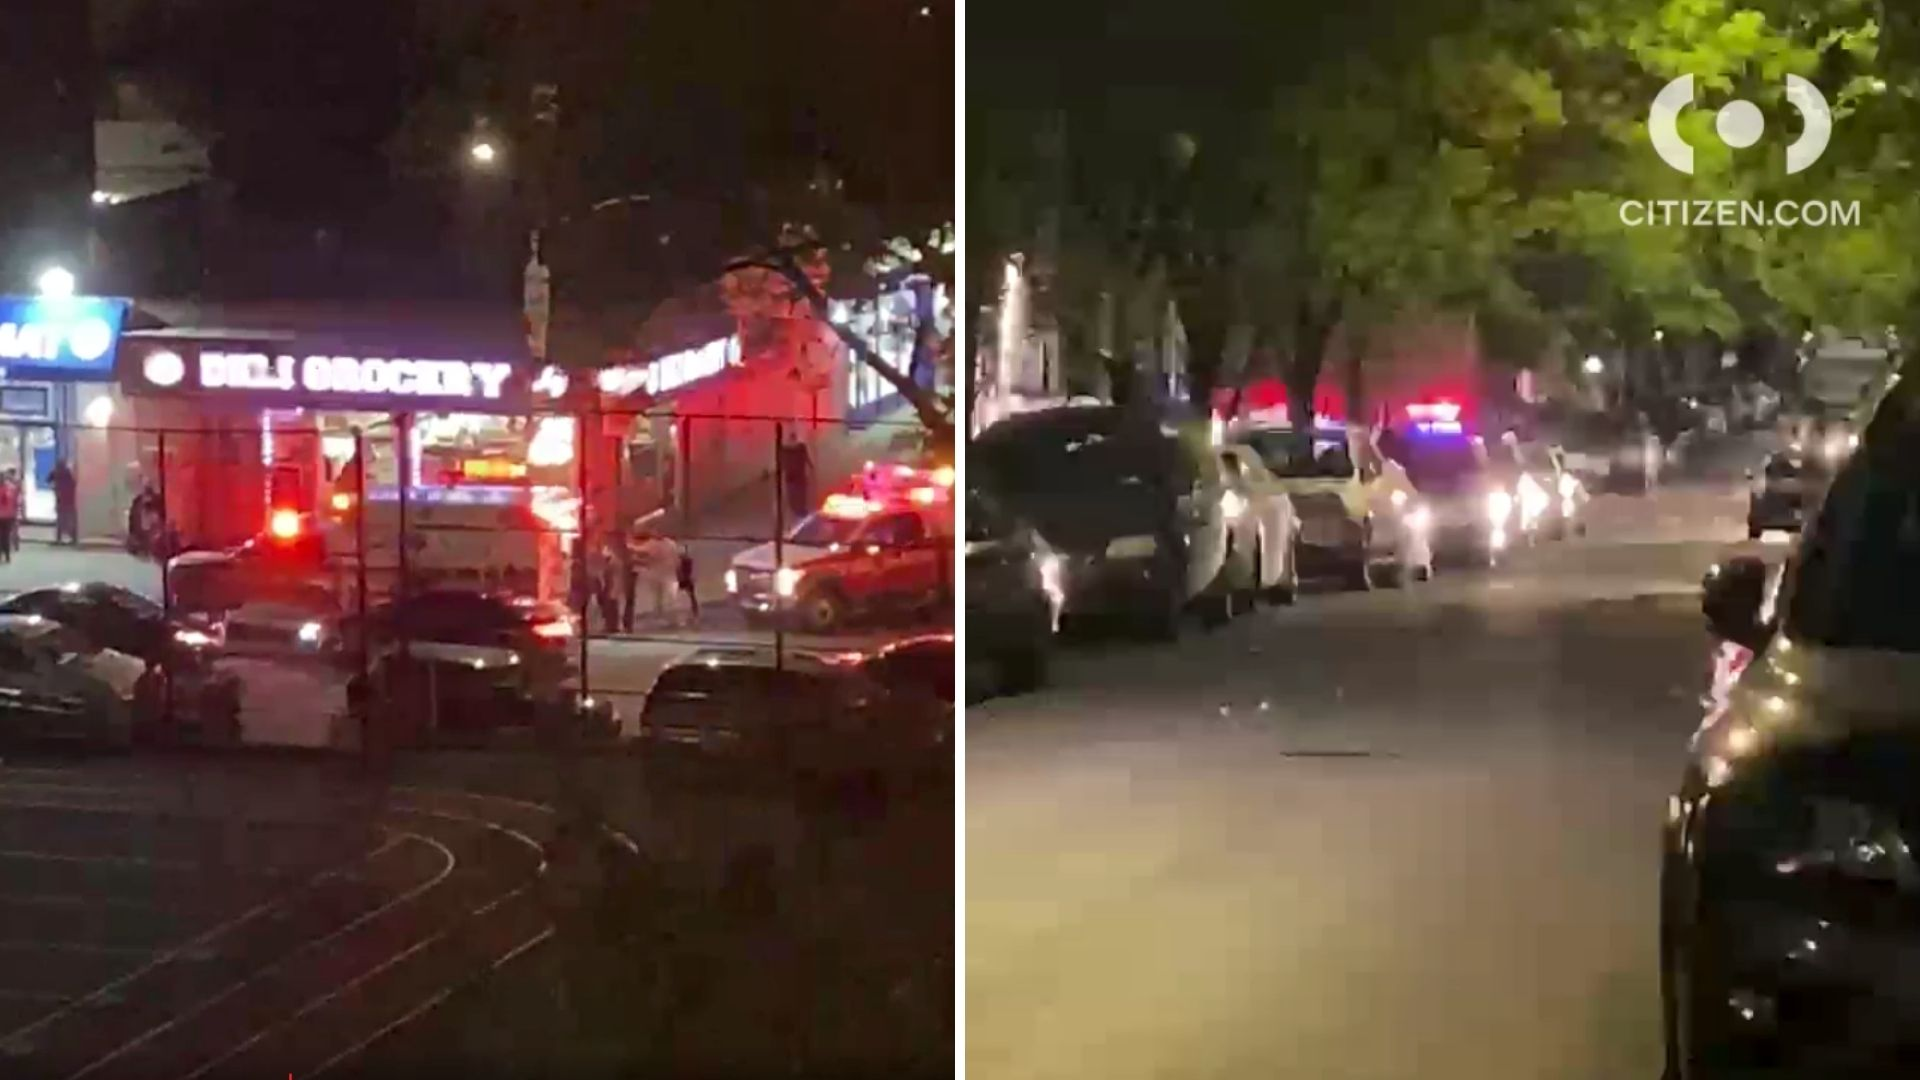 Police on the scene after a 16-year-old boy was shot in the Bronx